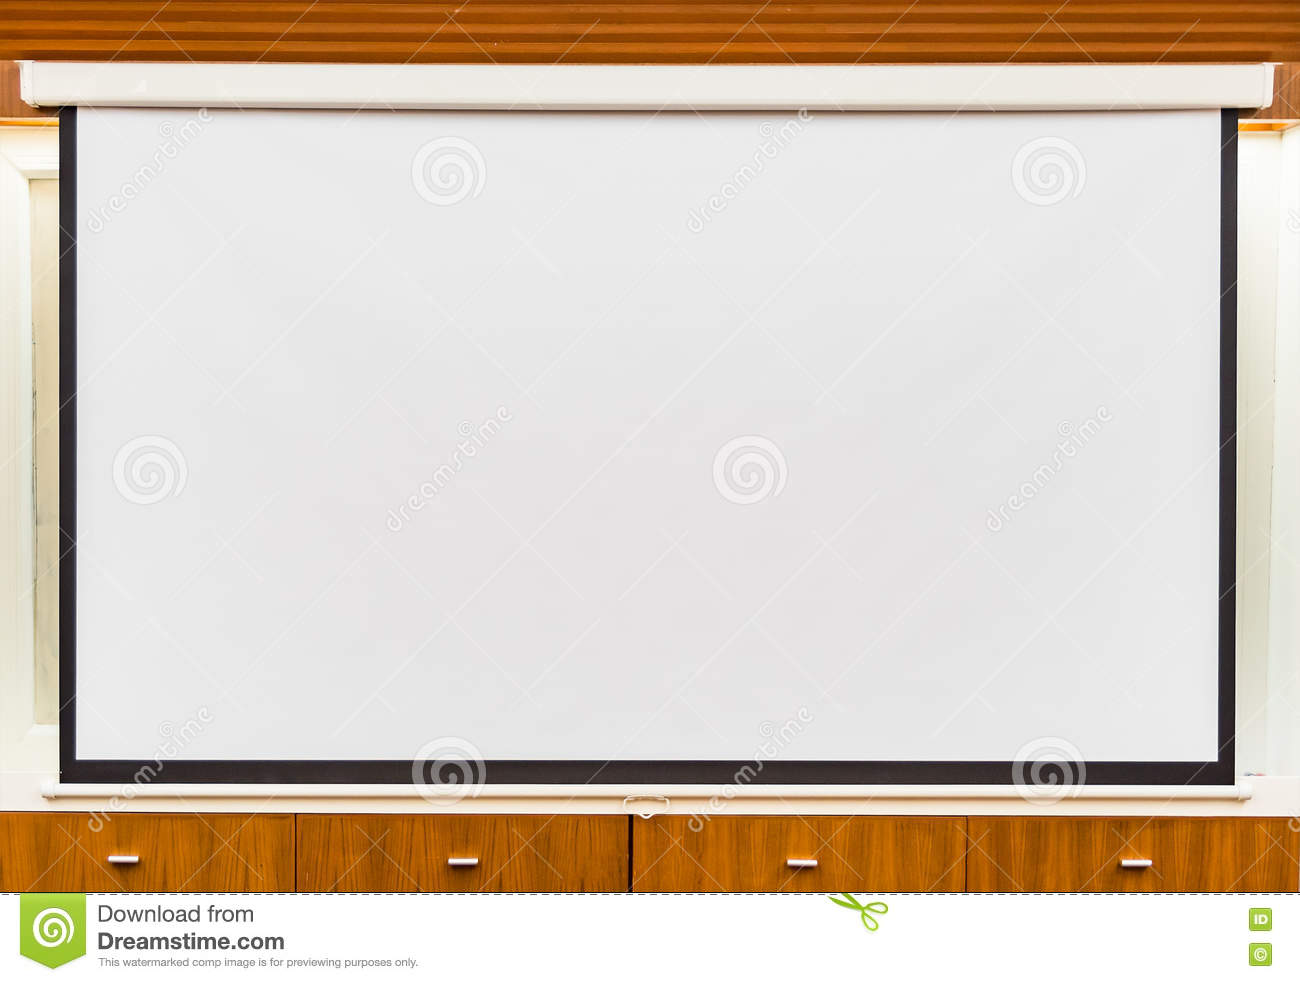 A White Overhead Projector On Ceiling In Meeting Room